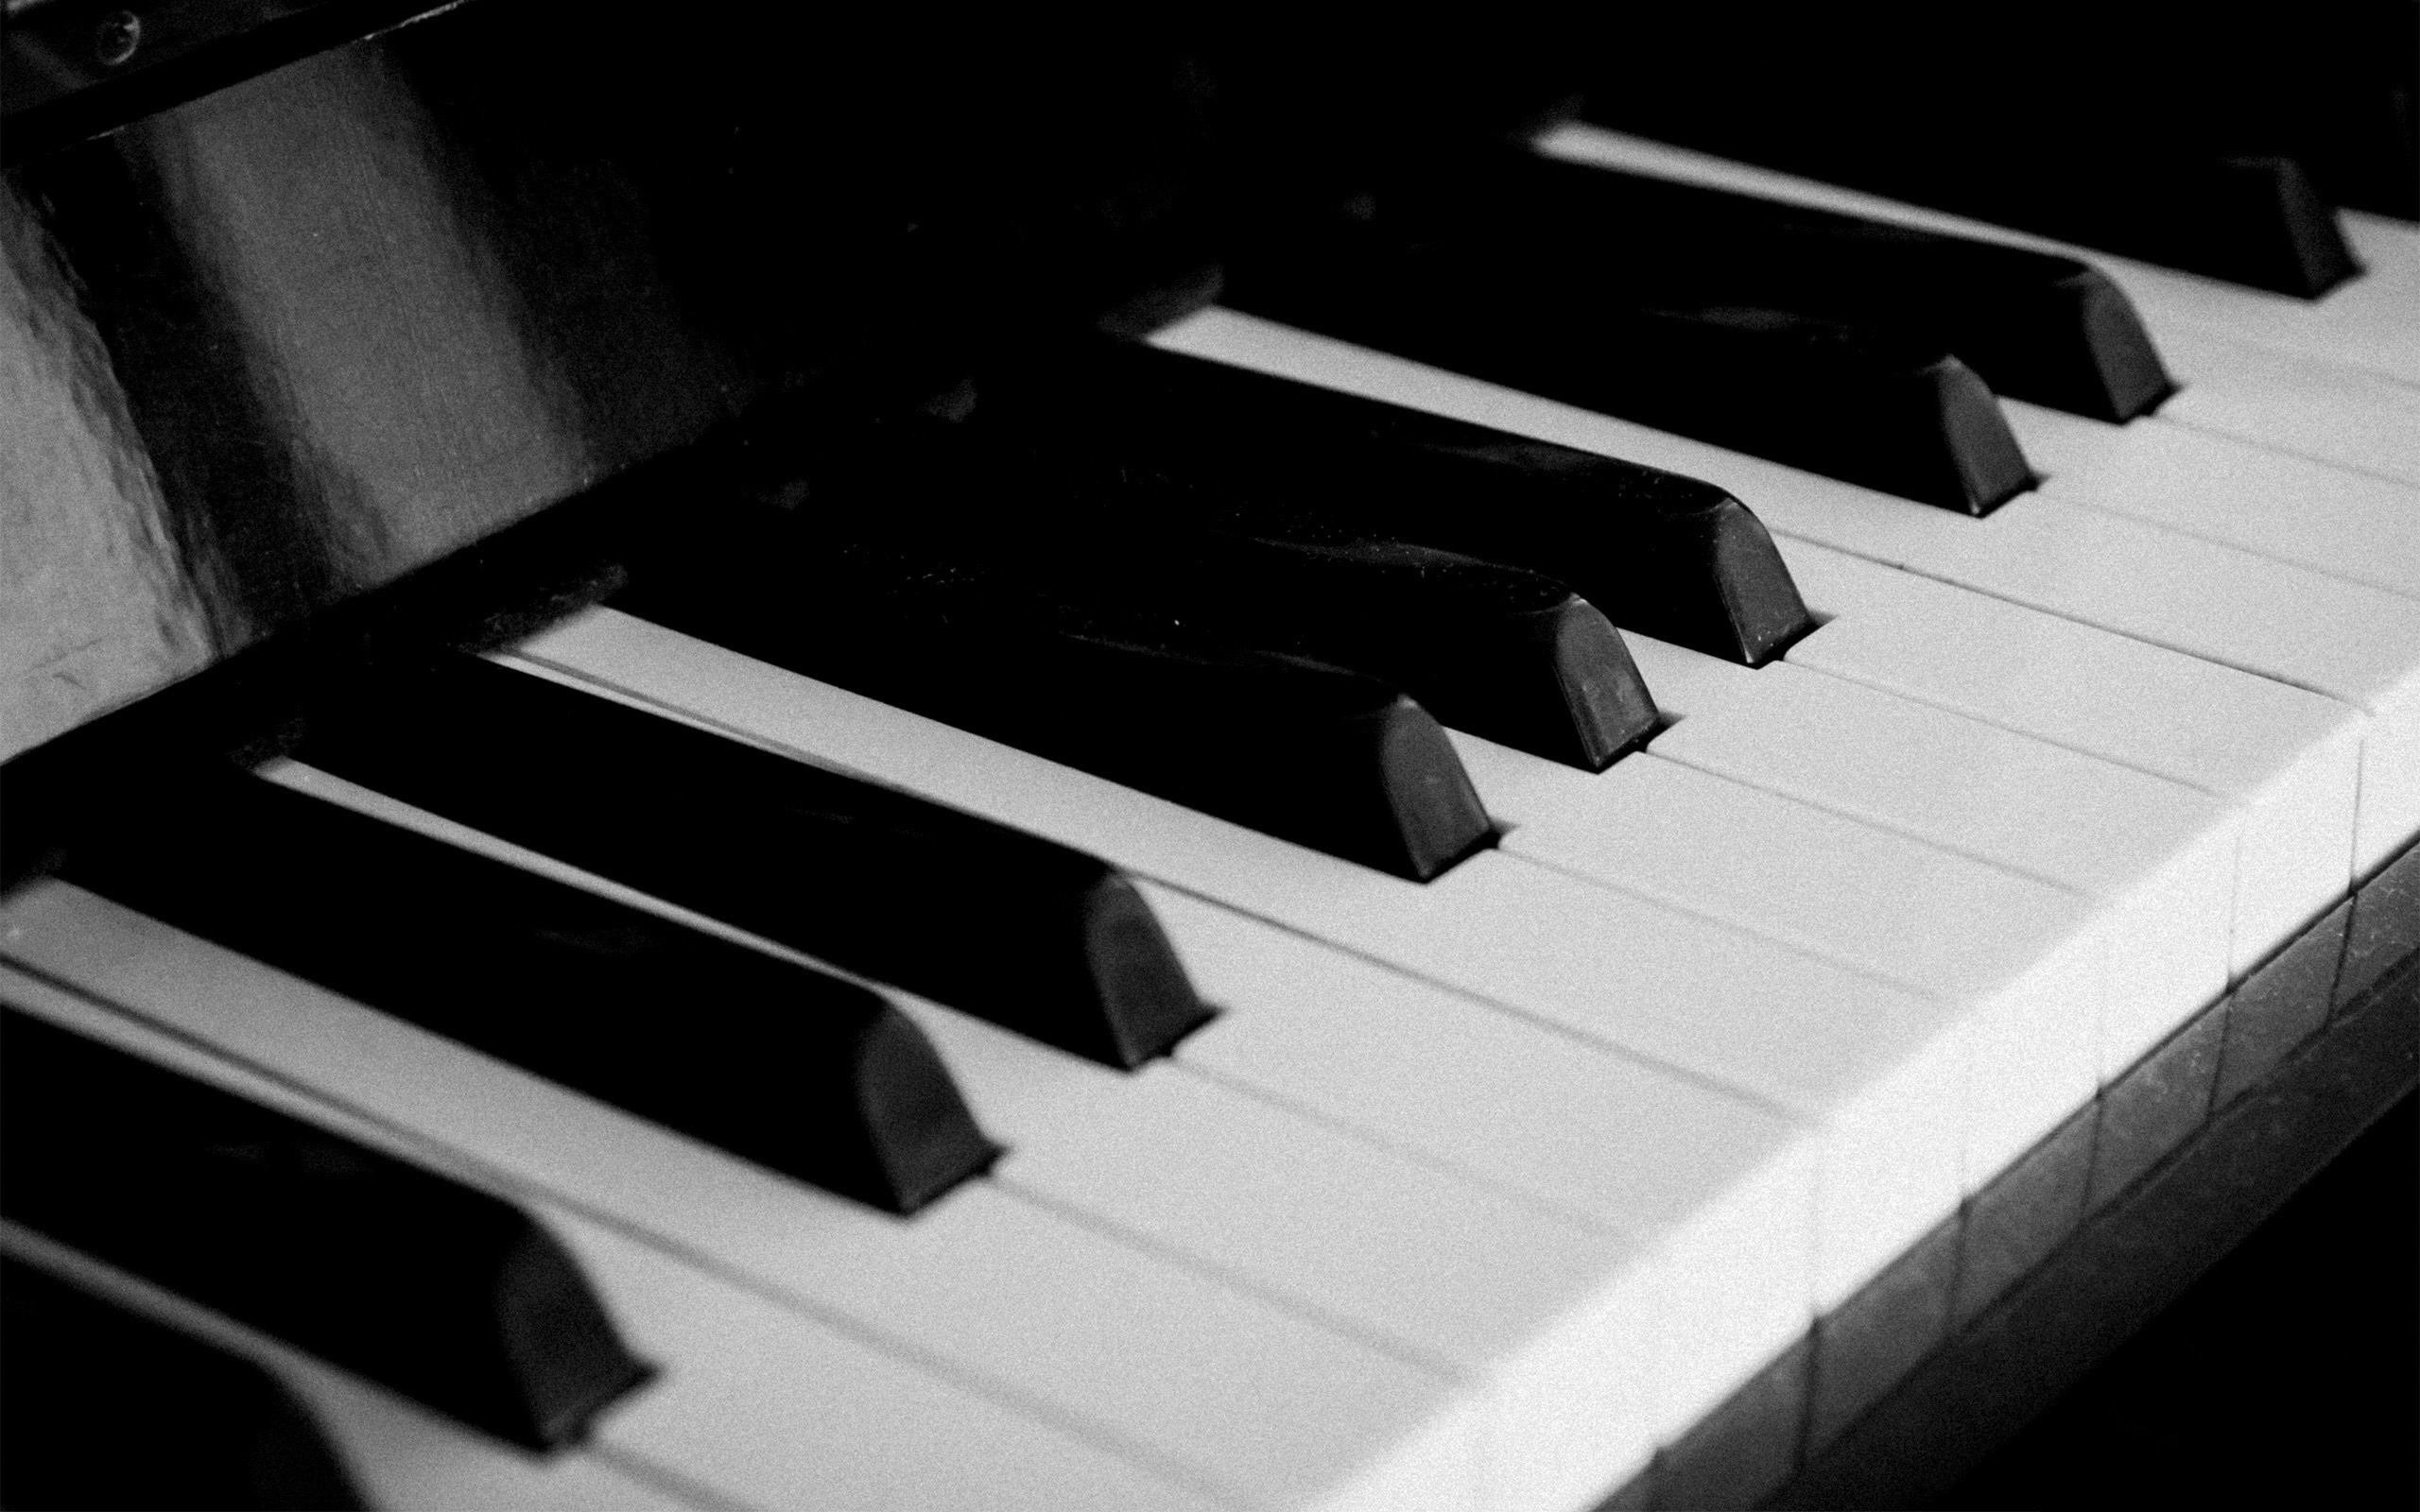 Hd Piano Wallpapers on